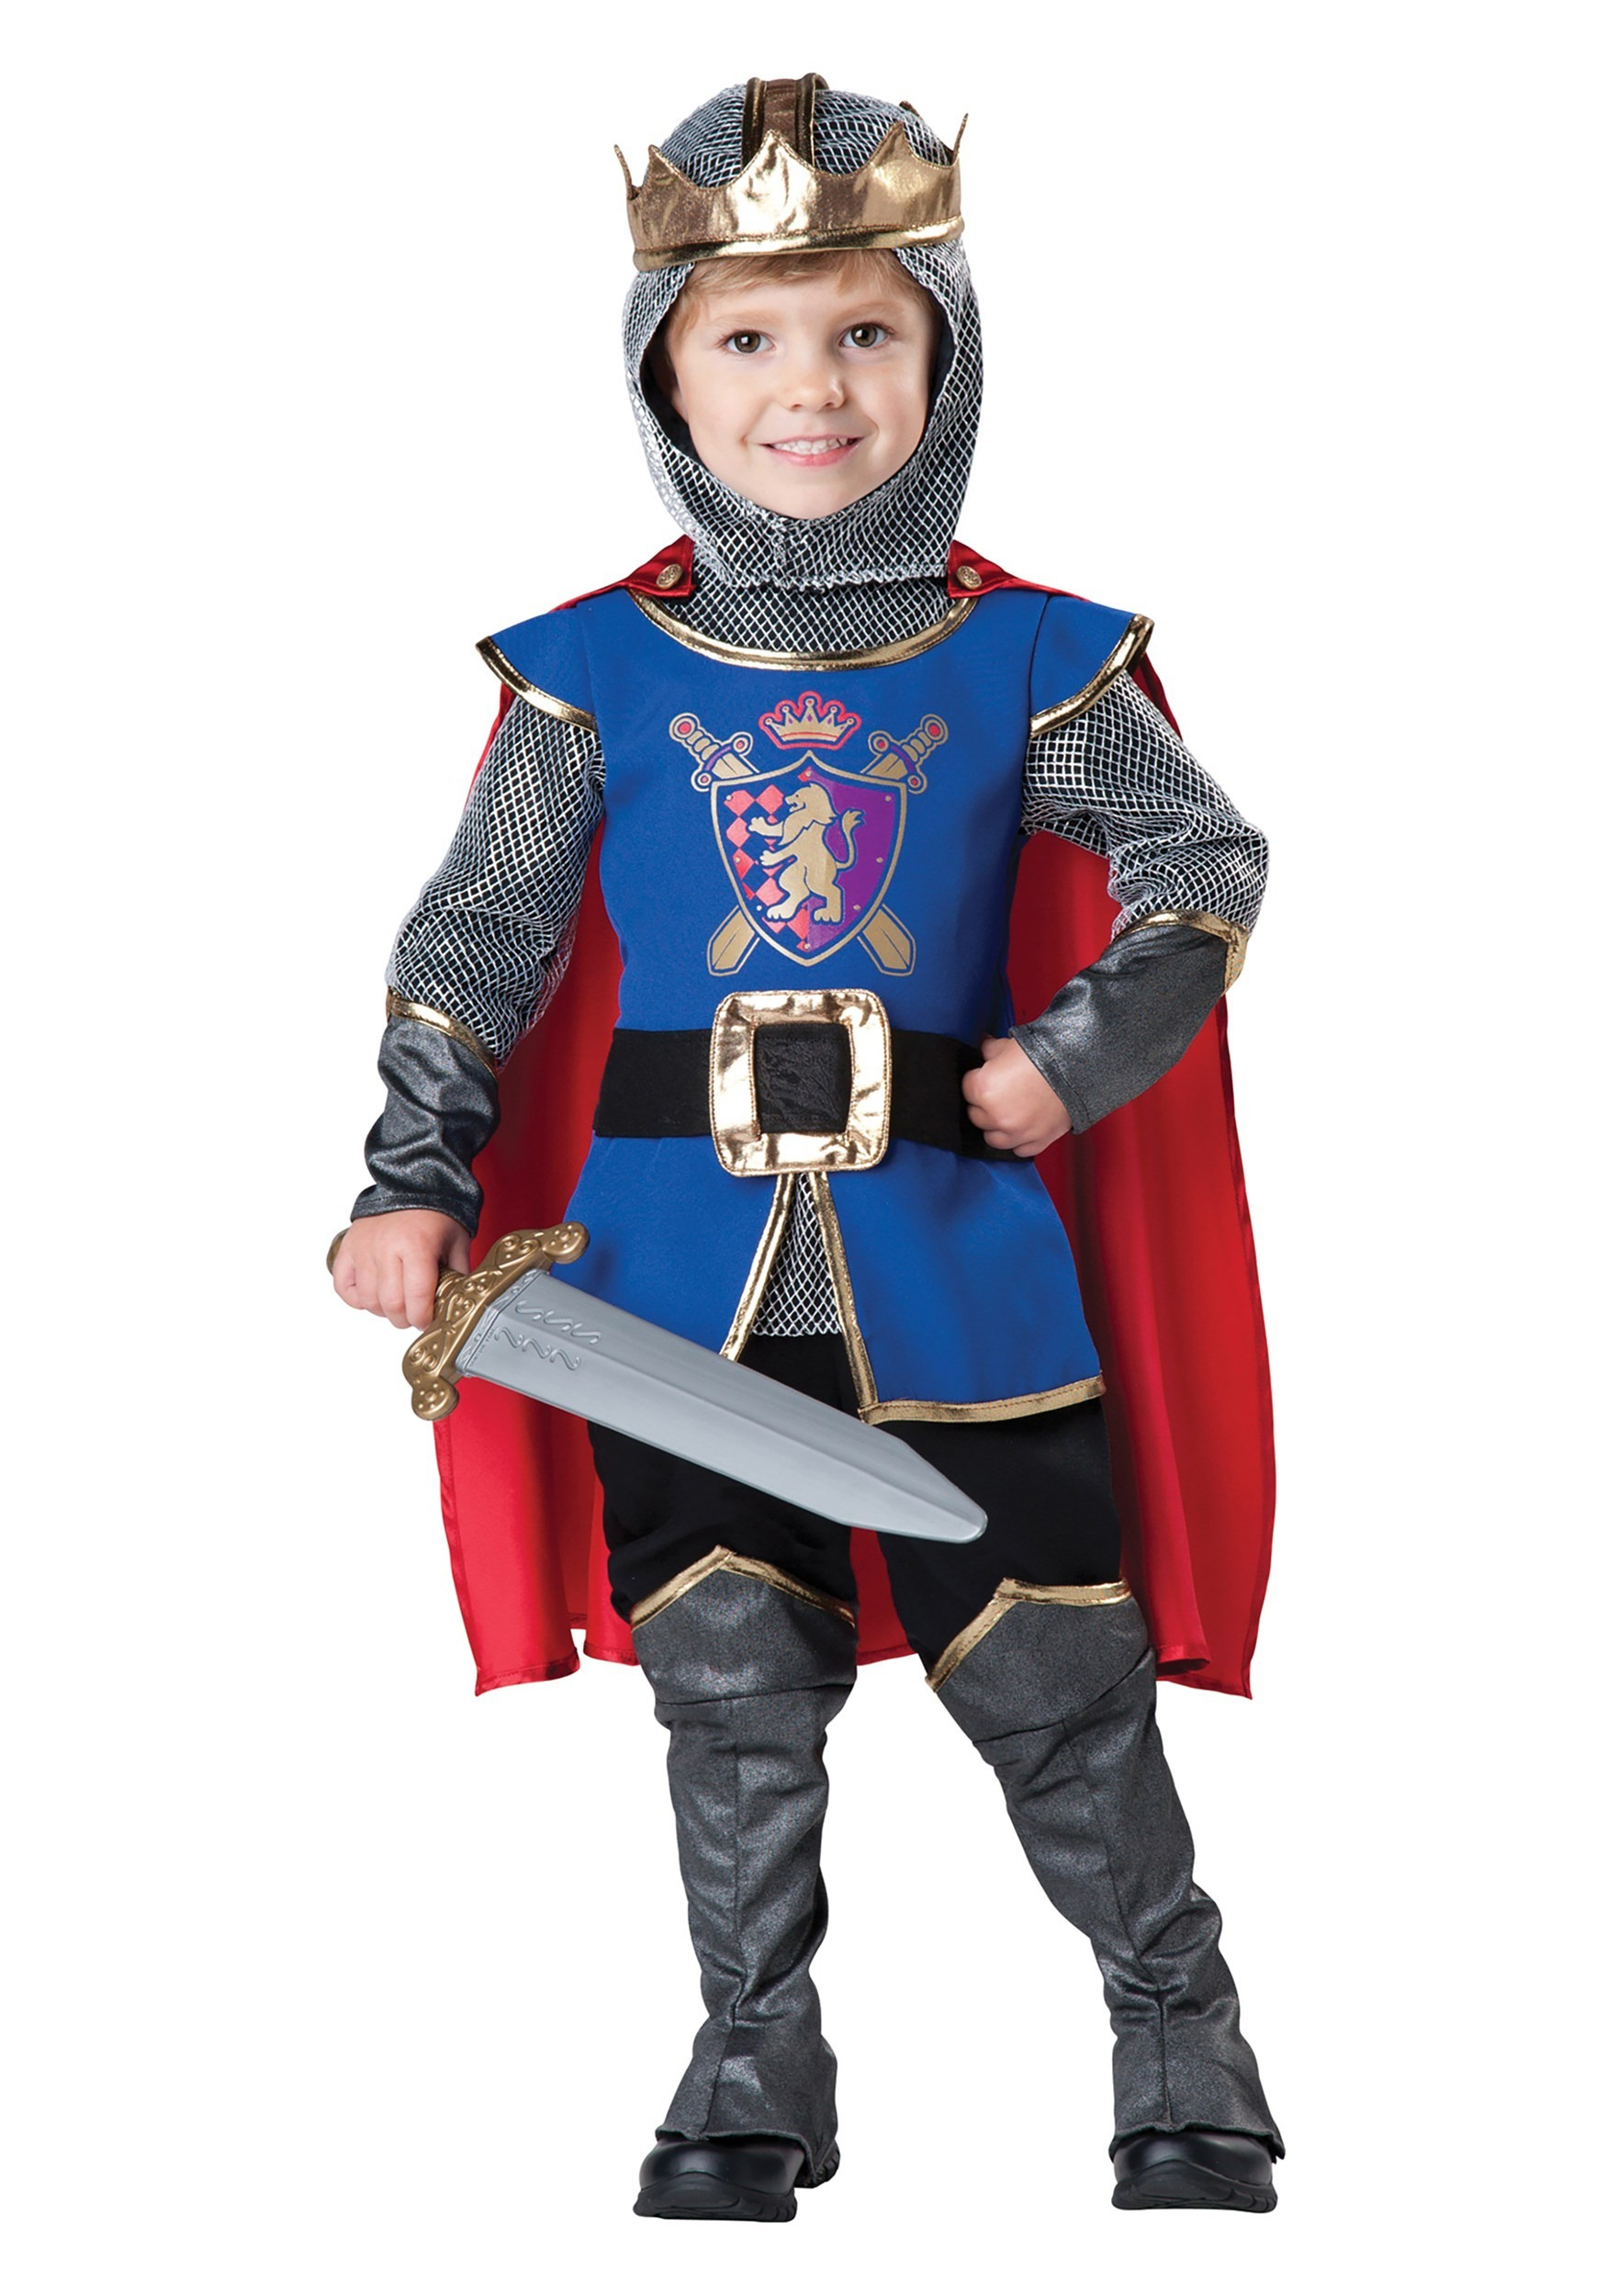 Knight Costume for Toddlers | Toddler Warrior Costume